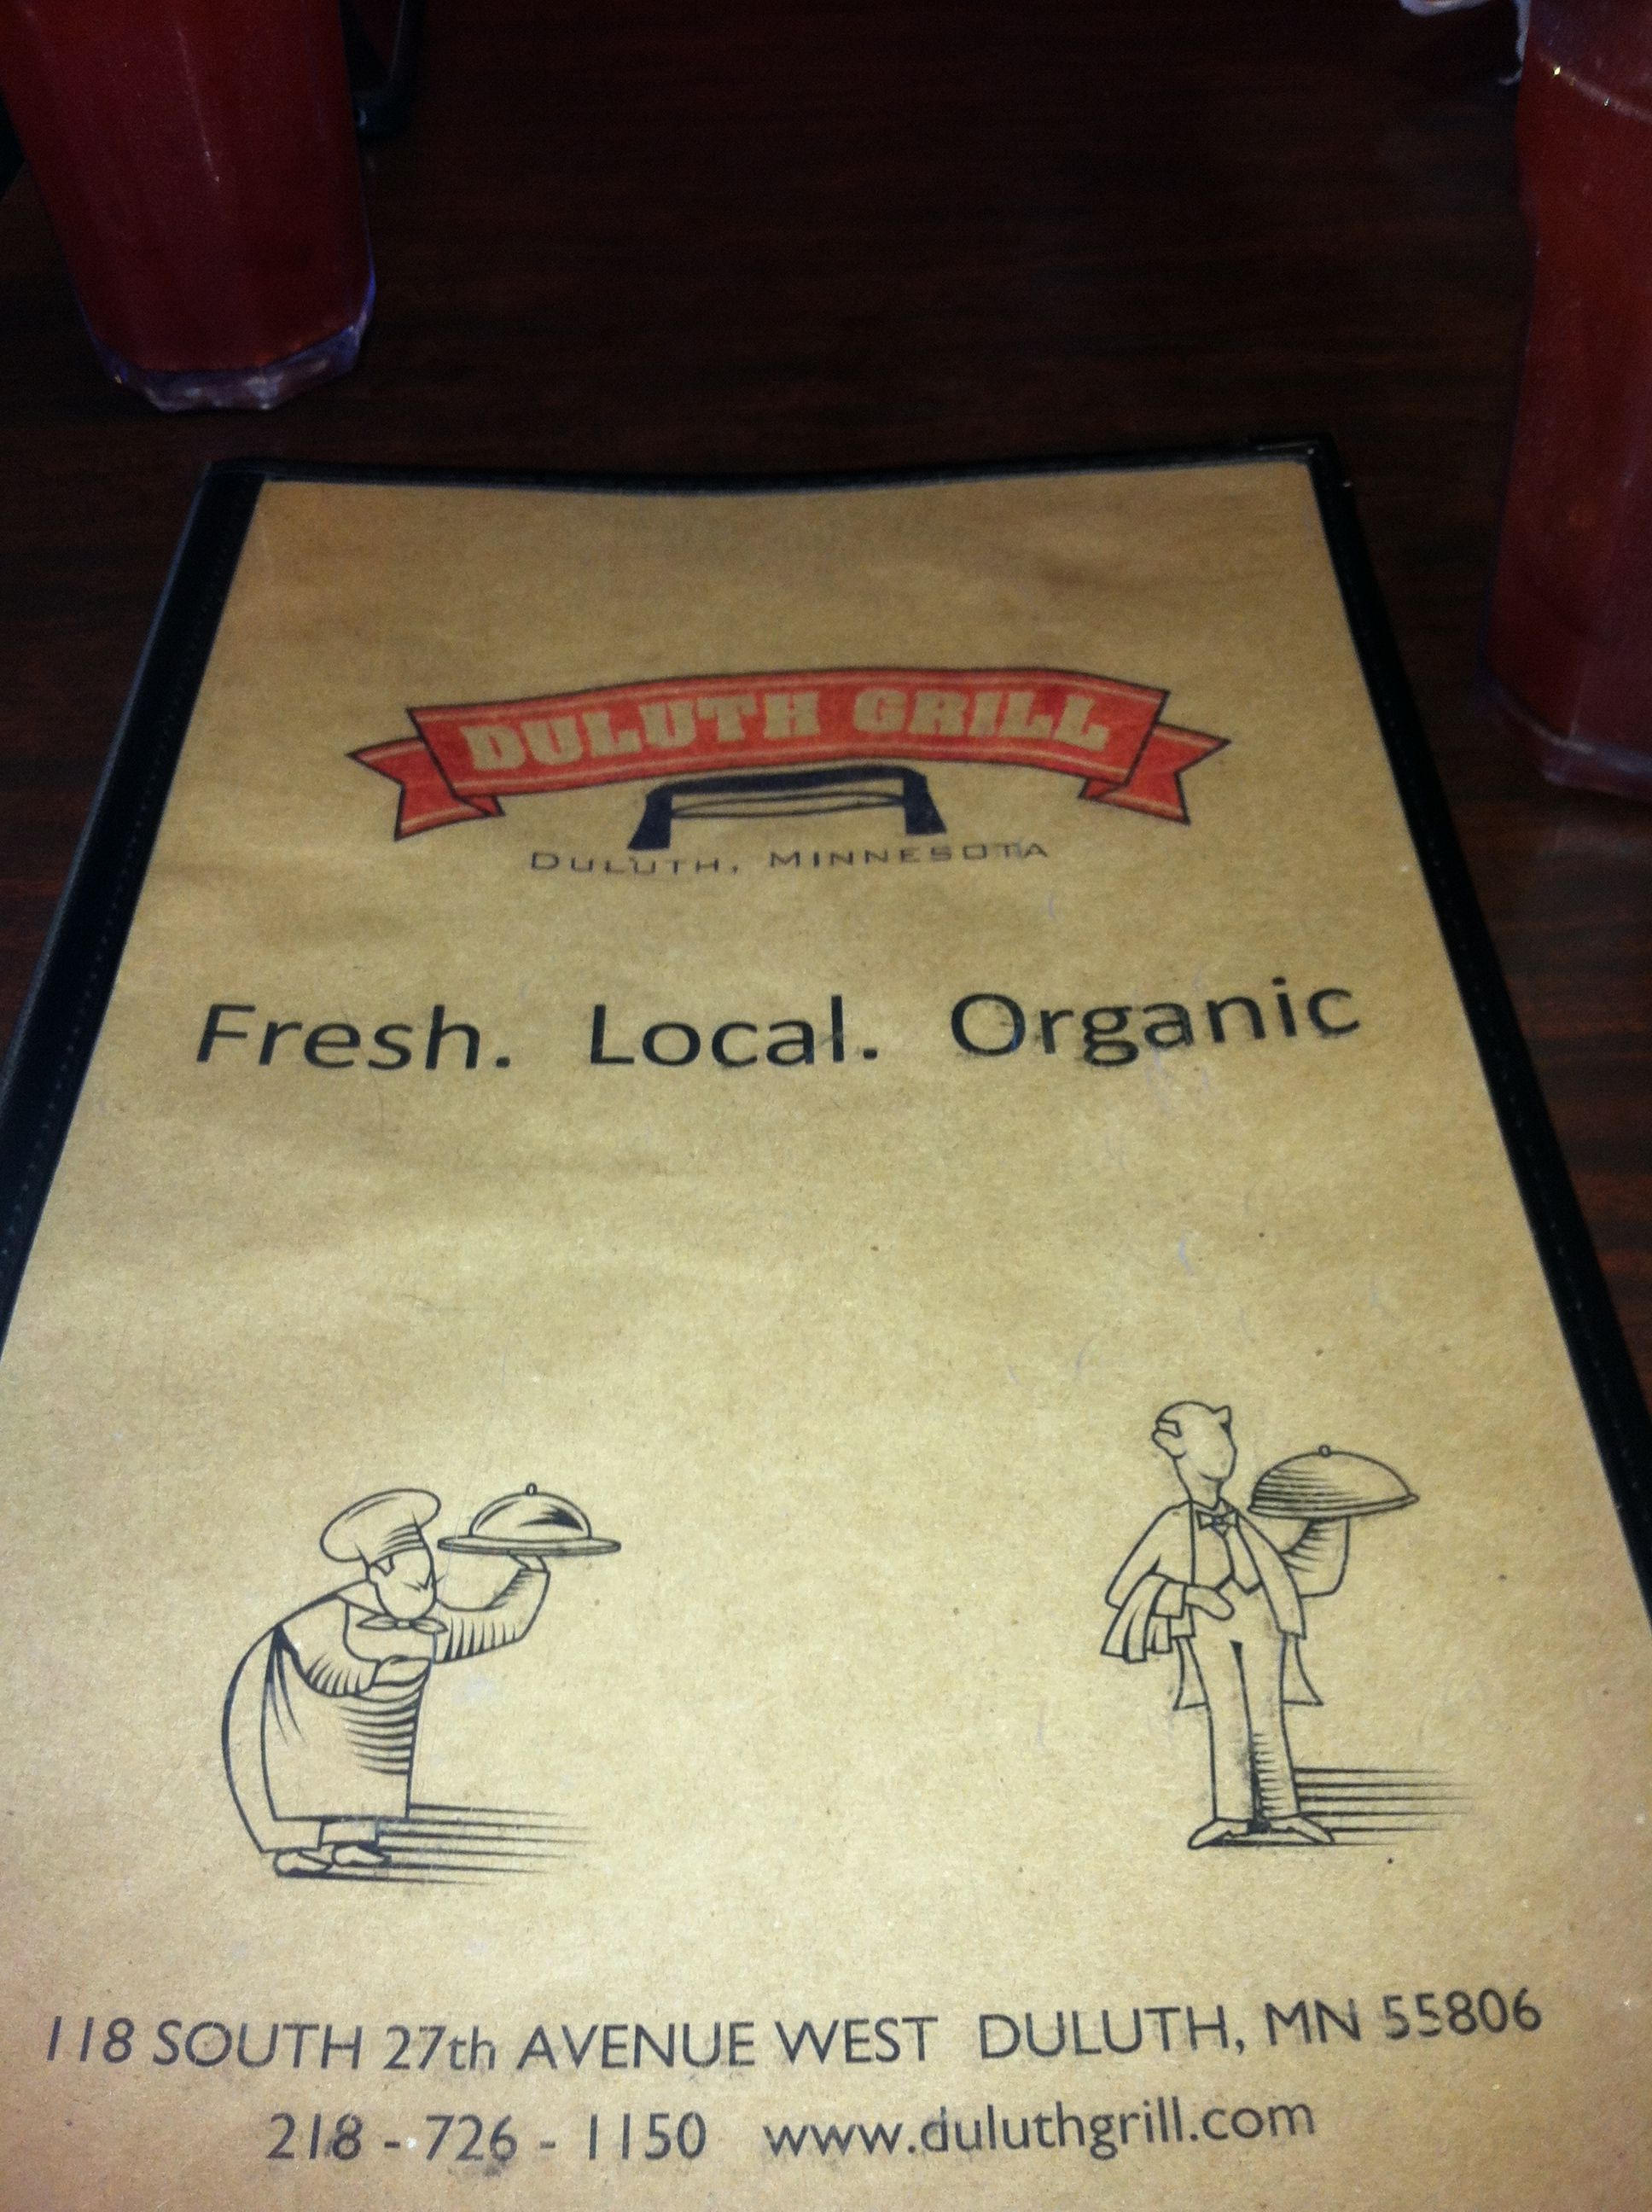 Pin By Texas Hoosier On Foodie Loves Duluth Grill Duluth Diner